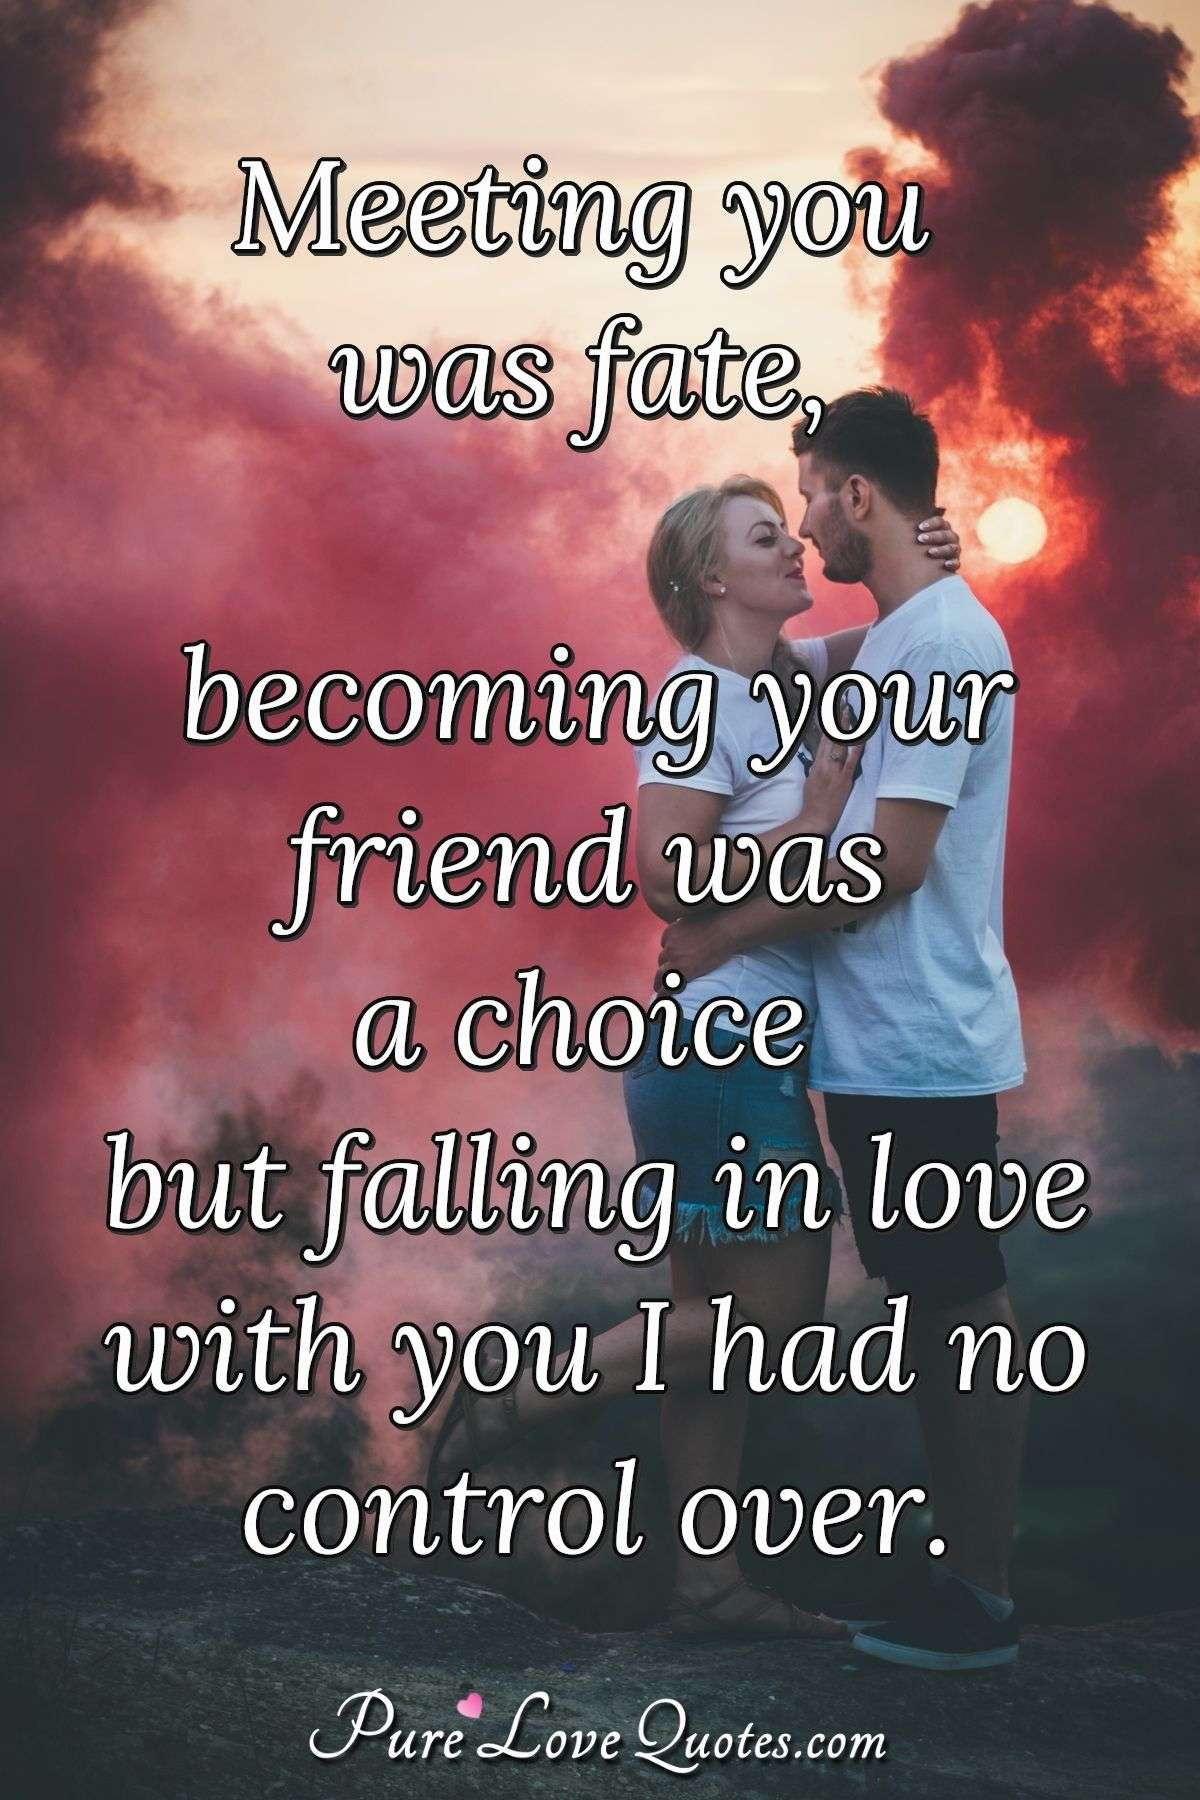 Fate Love Quotes : quotes, Meeting, Fate,, Becoming, Friend, Choice, Falling, Love..., PureLoveQuotes